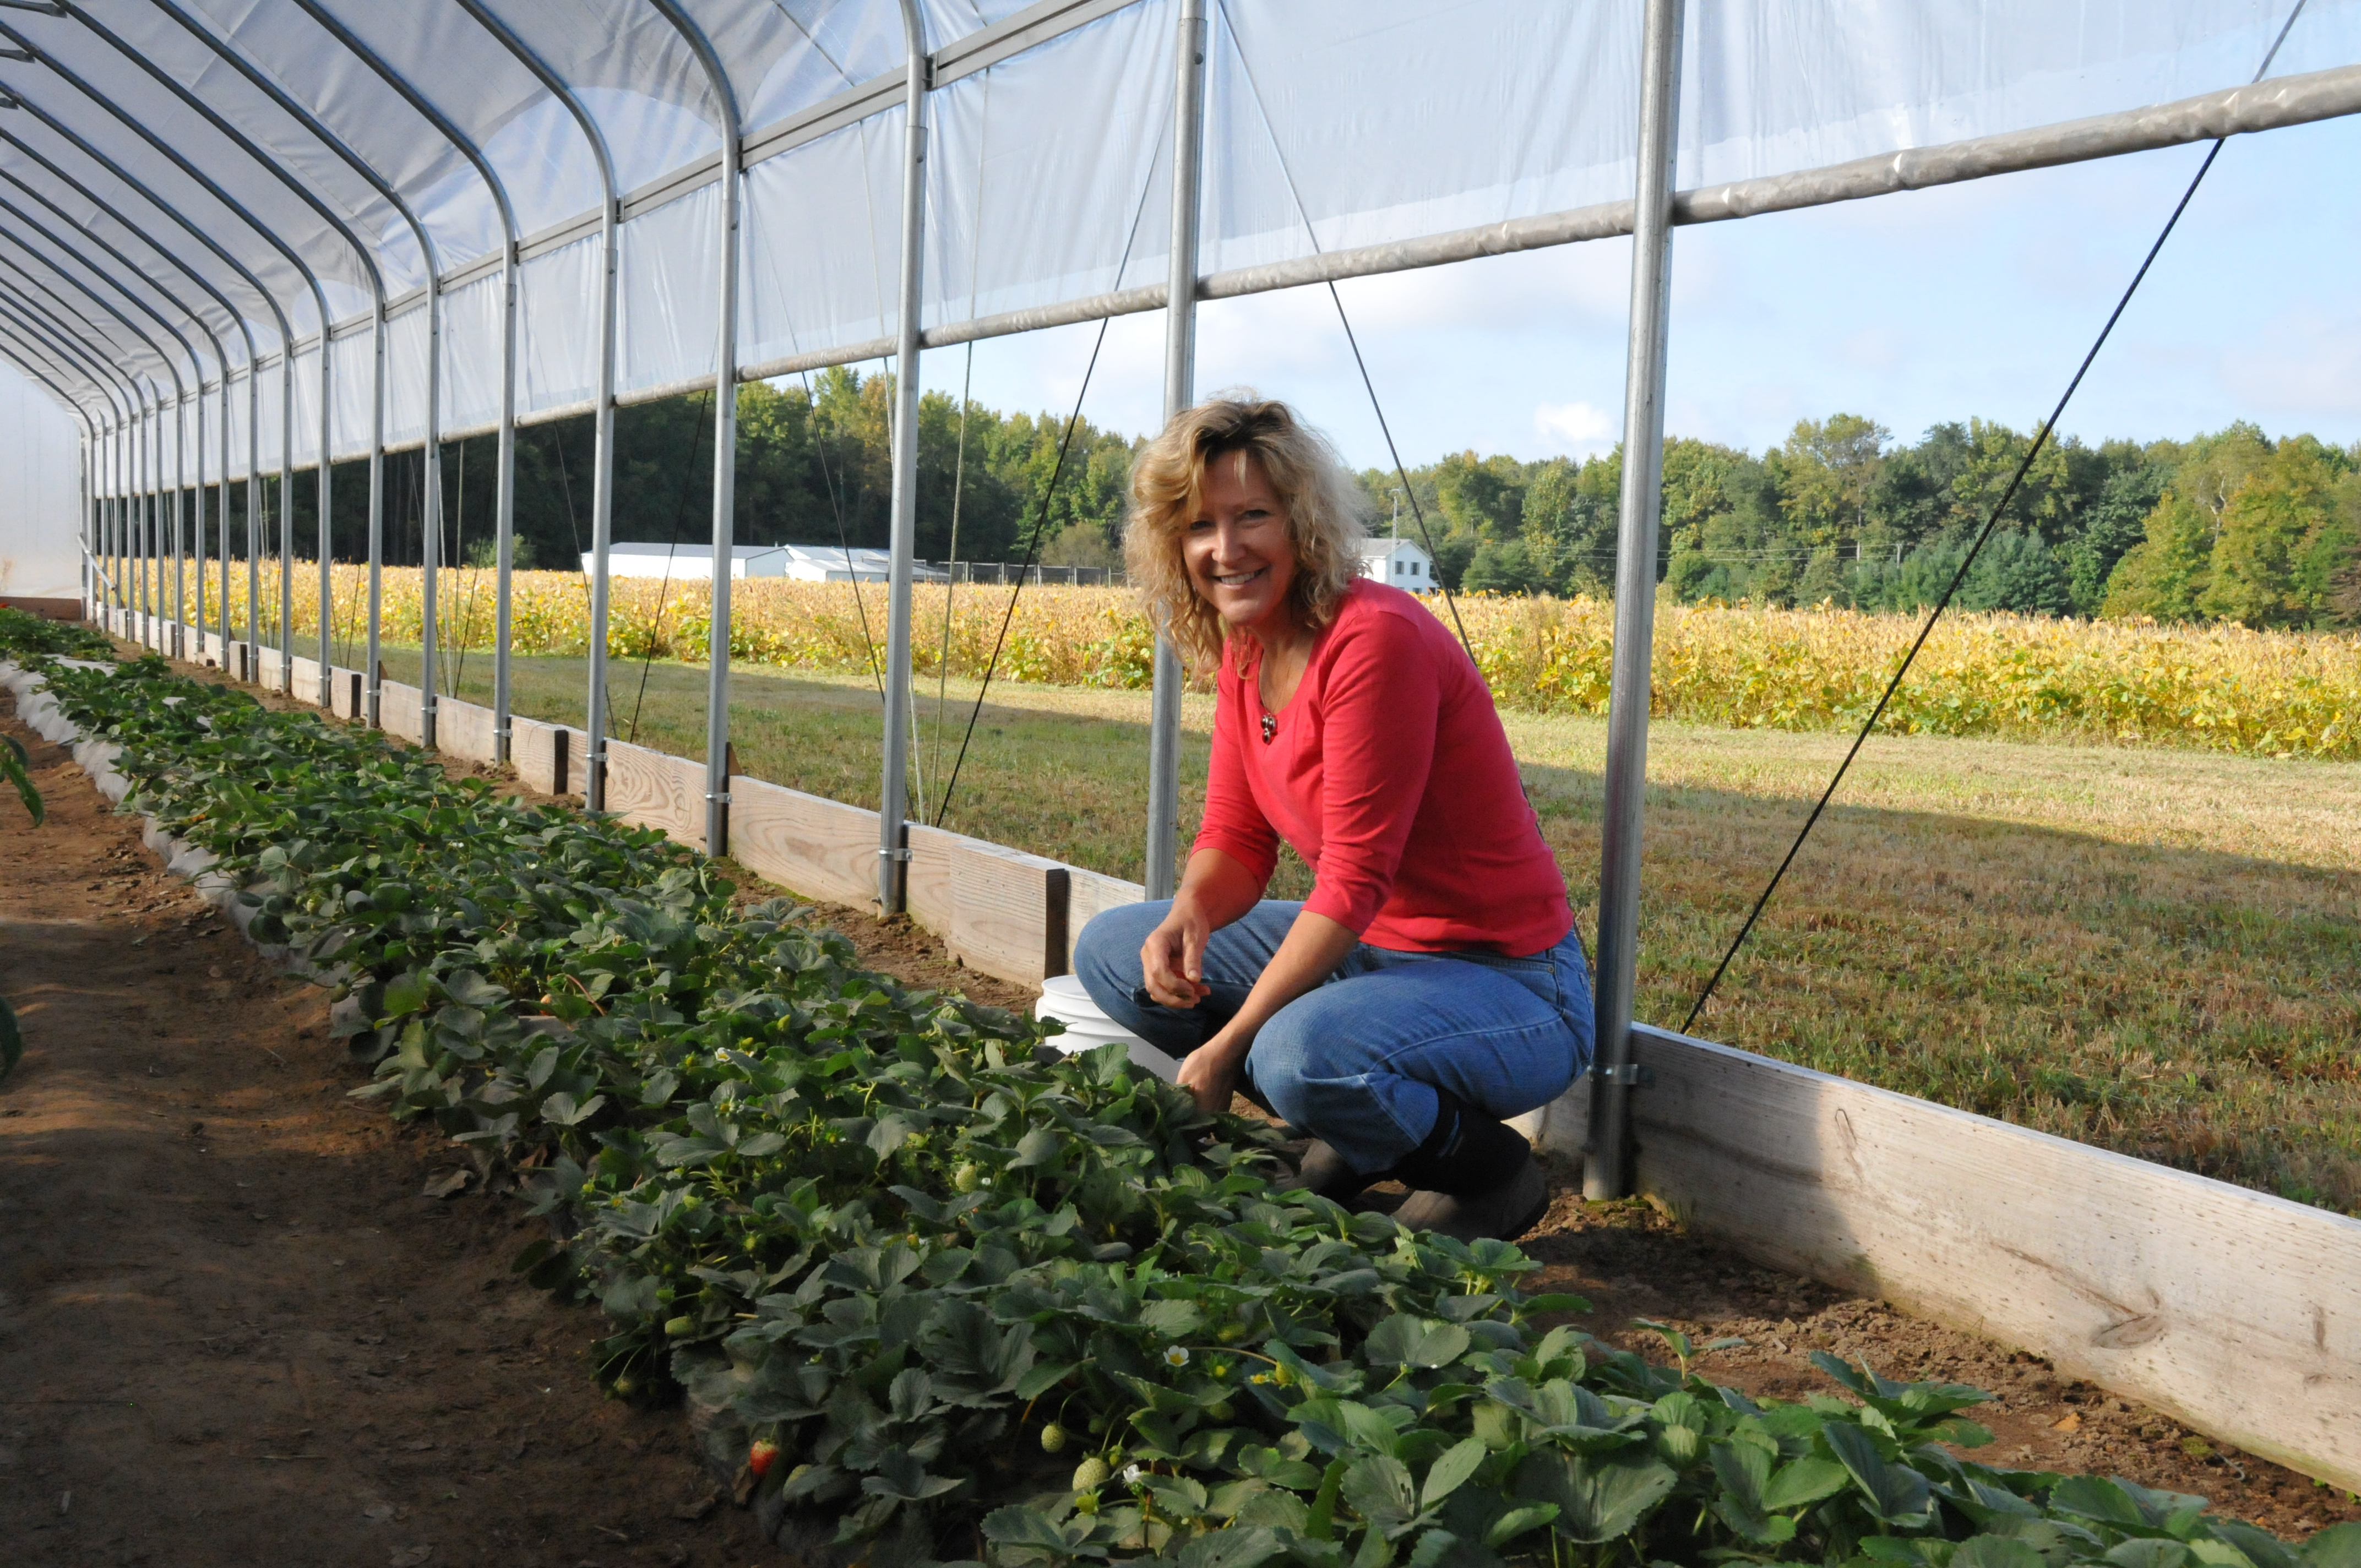 Kent County farmer Mary Brown utilizes a seasonal high tunnel to extend growing season and improve plant and soil quality.